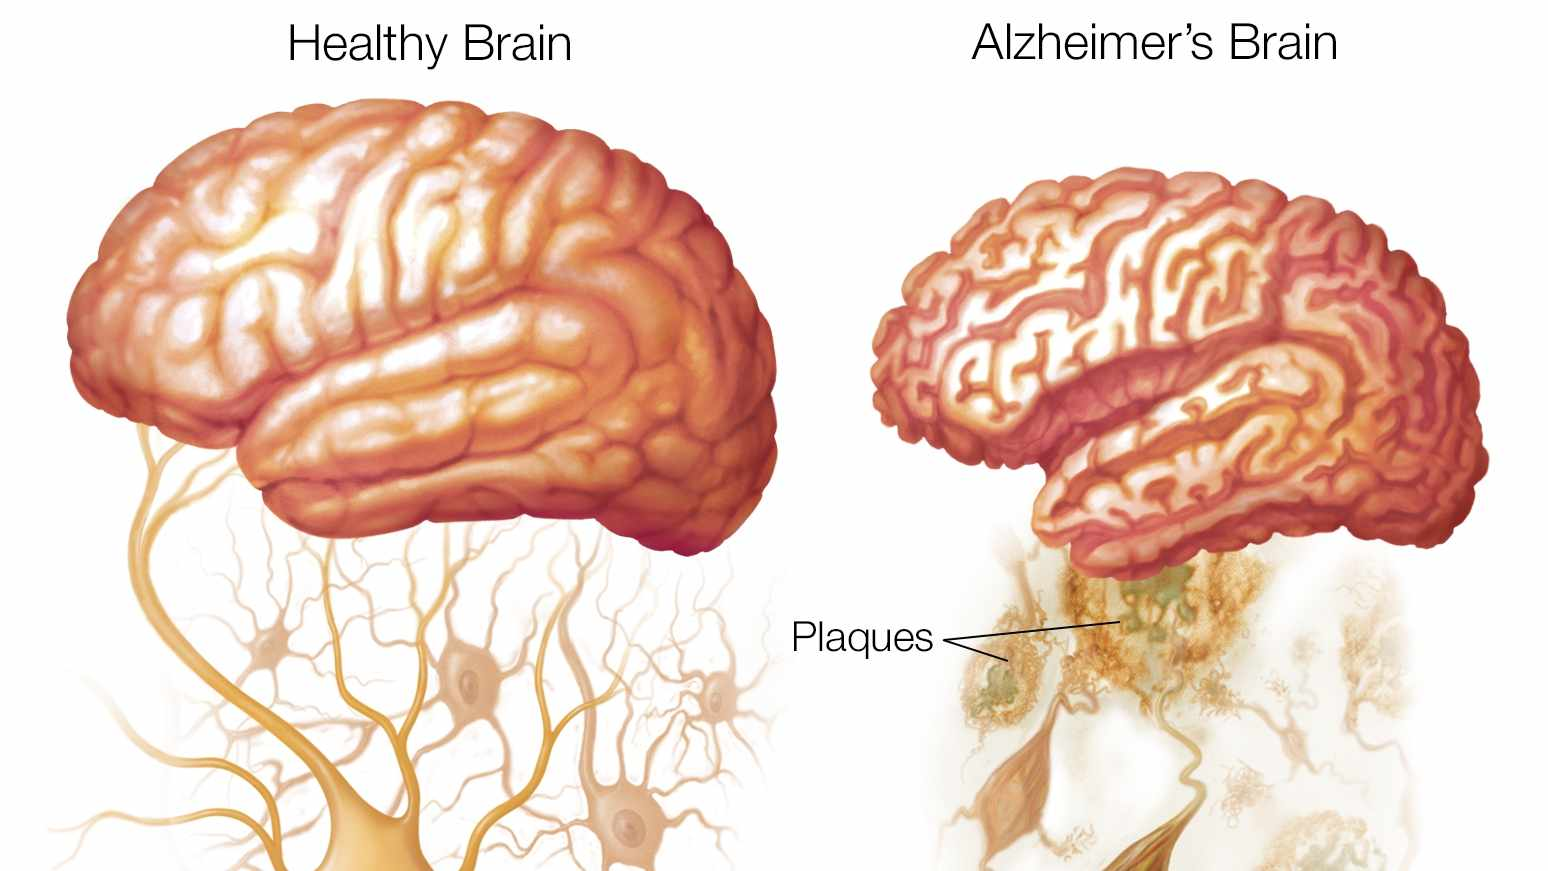 Illustration of a healthy brain and Alzheimer's brain